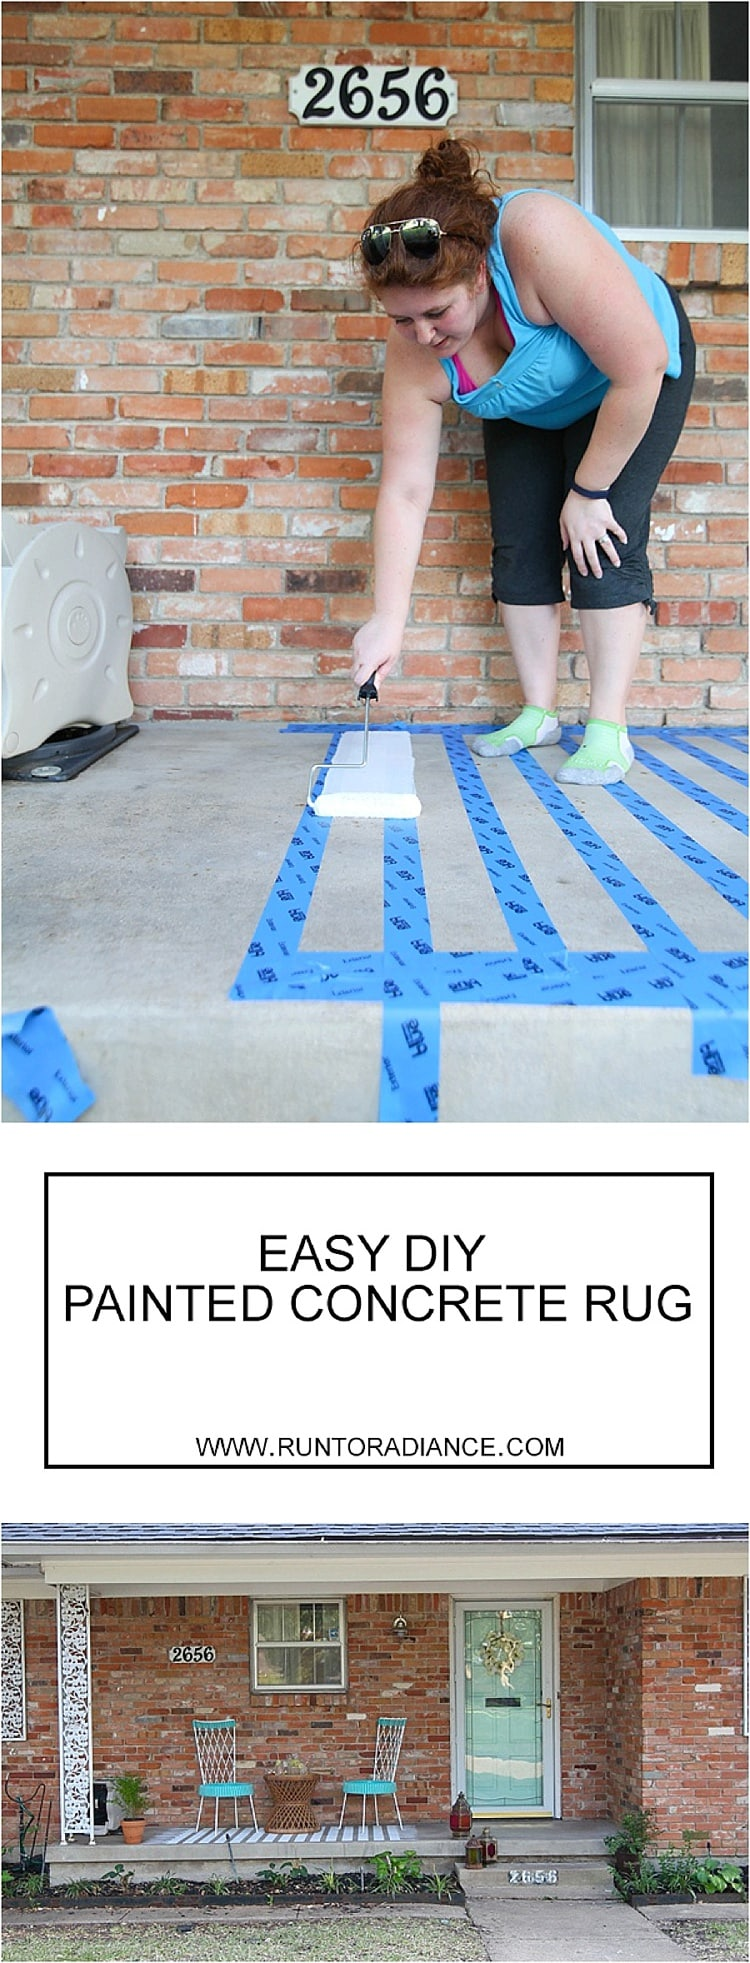 This Is An Easy Way To Do A Porch Makeover. Painting Concrete Is A Fast